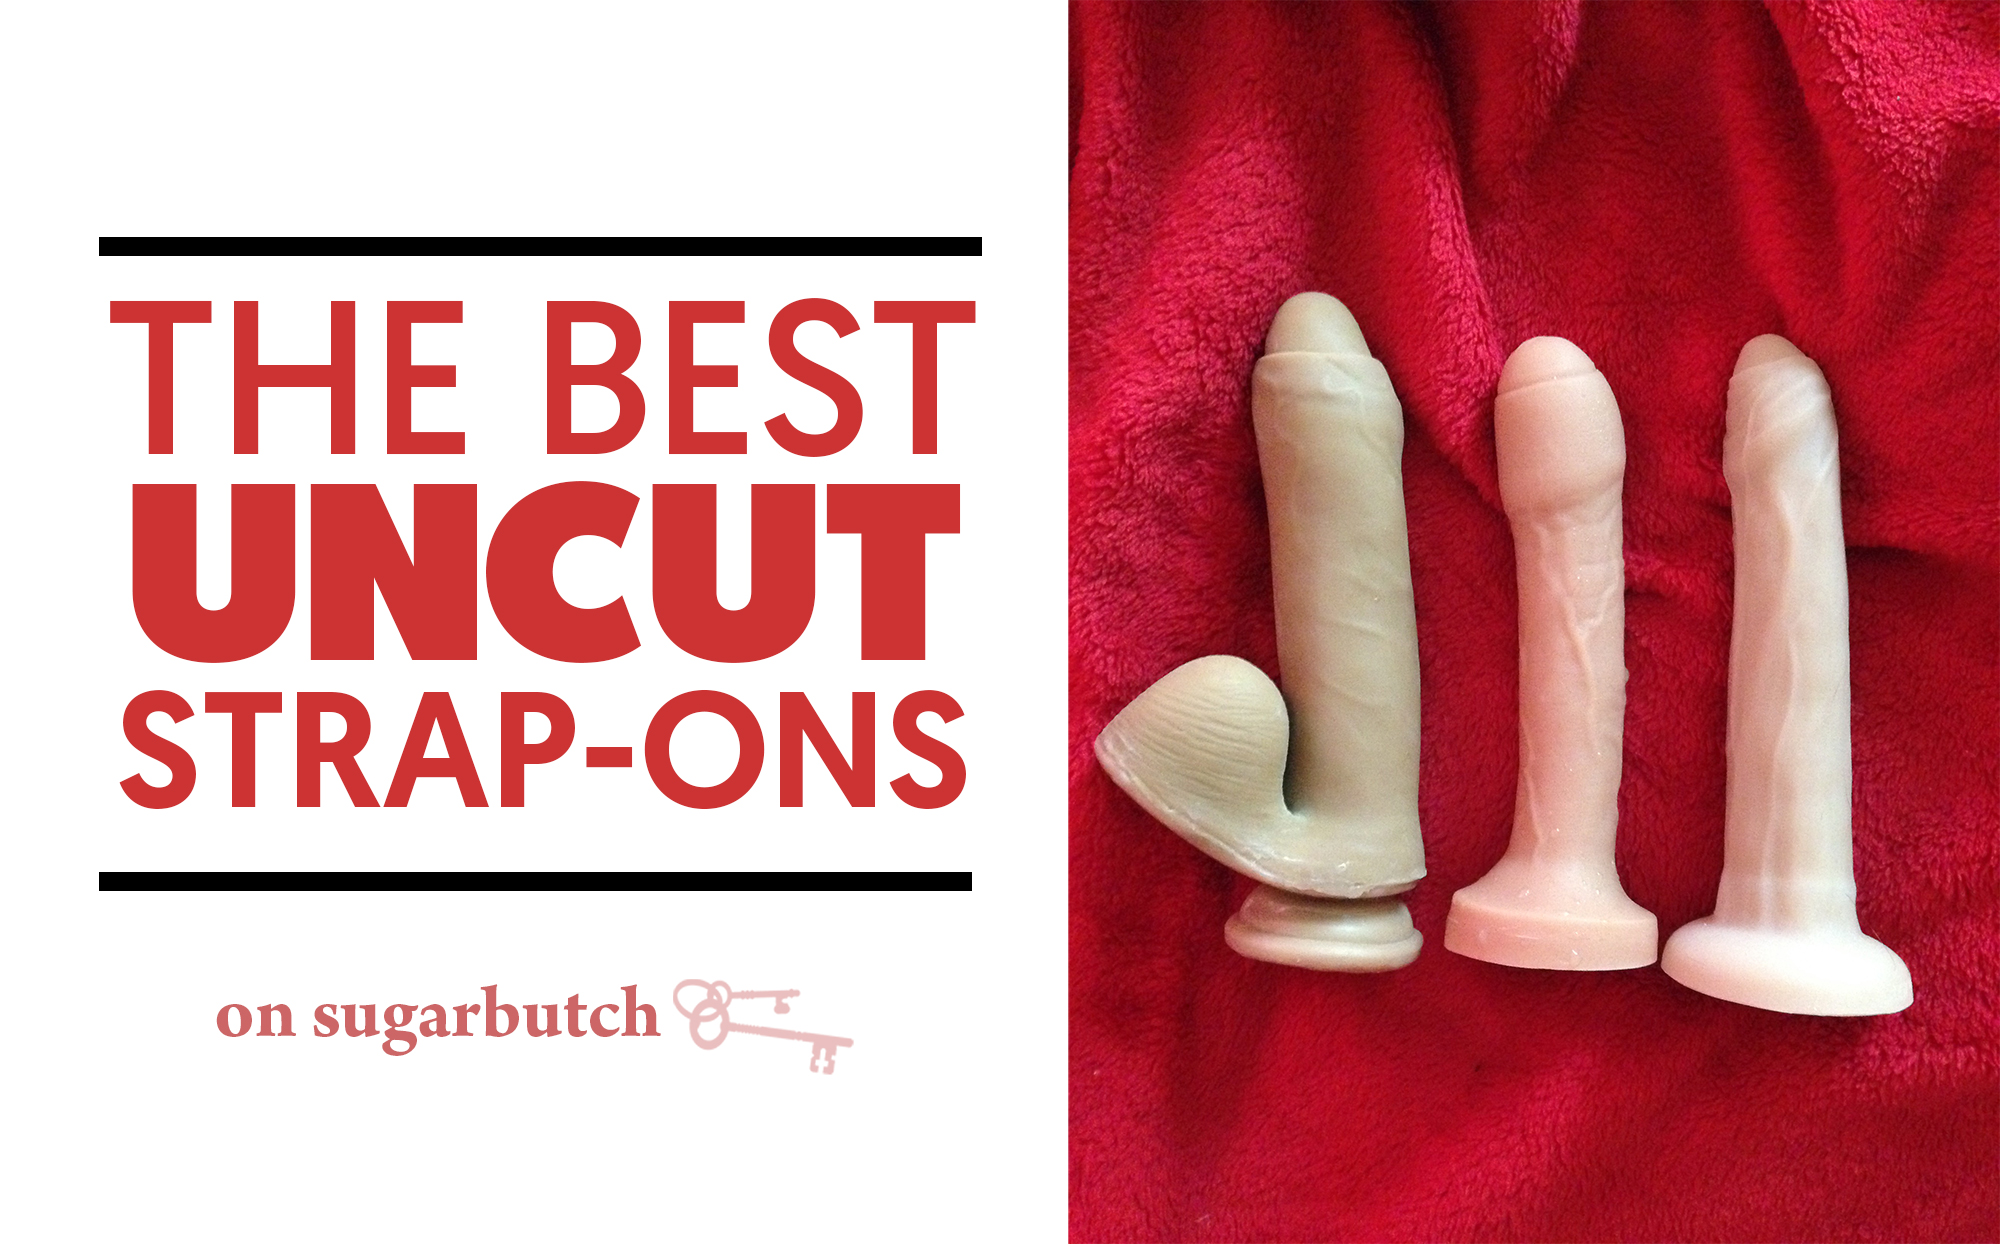 The Best Uncut Strap-Ons: Uncut #1 by Tantus & Ellis by New York Toy Collective